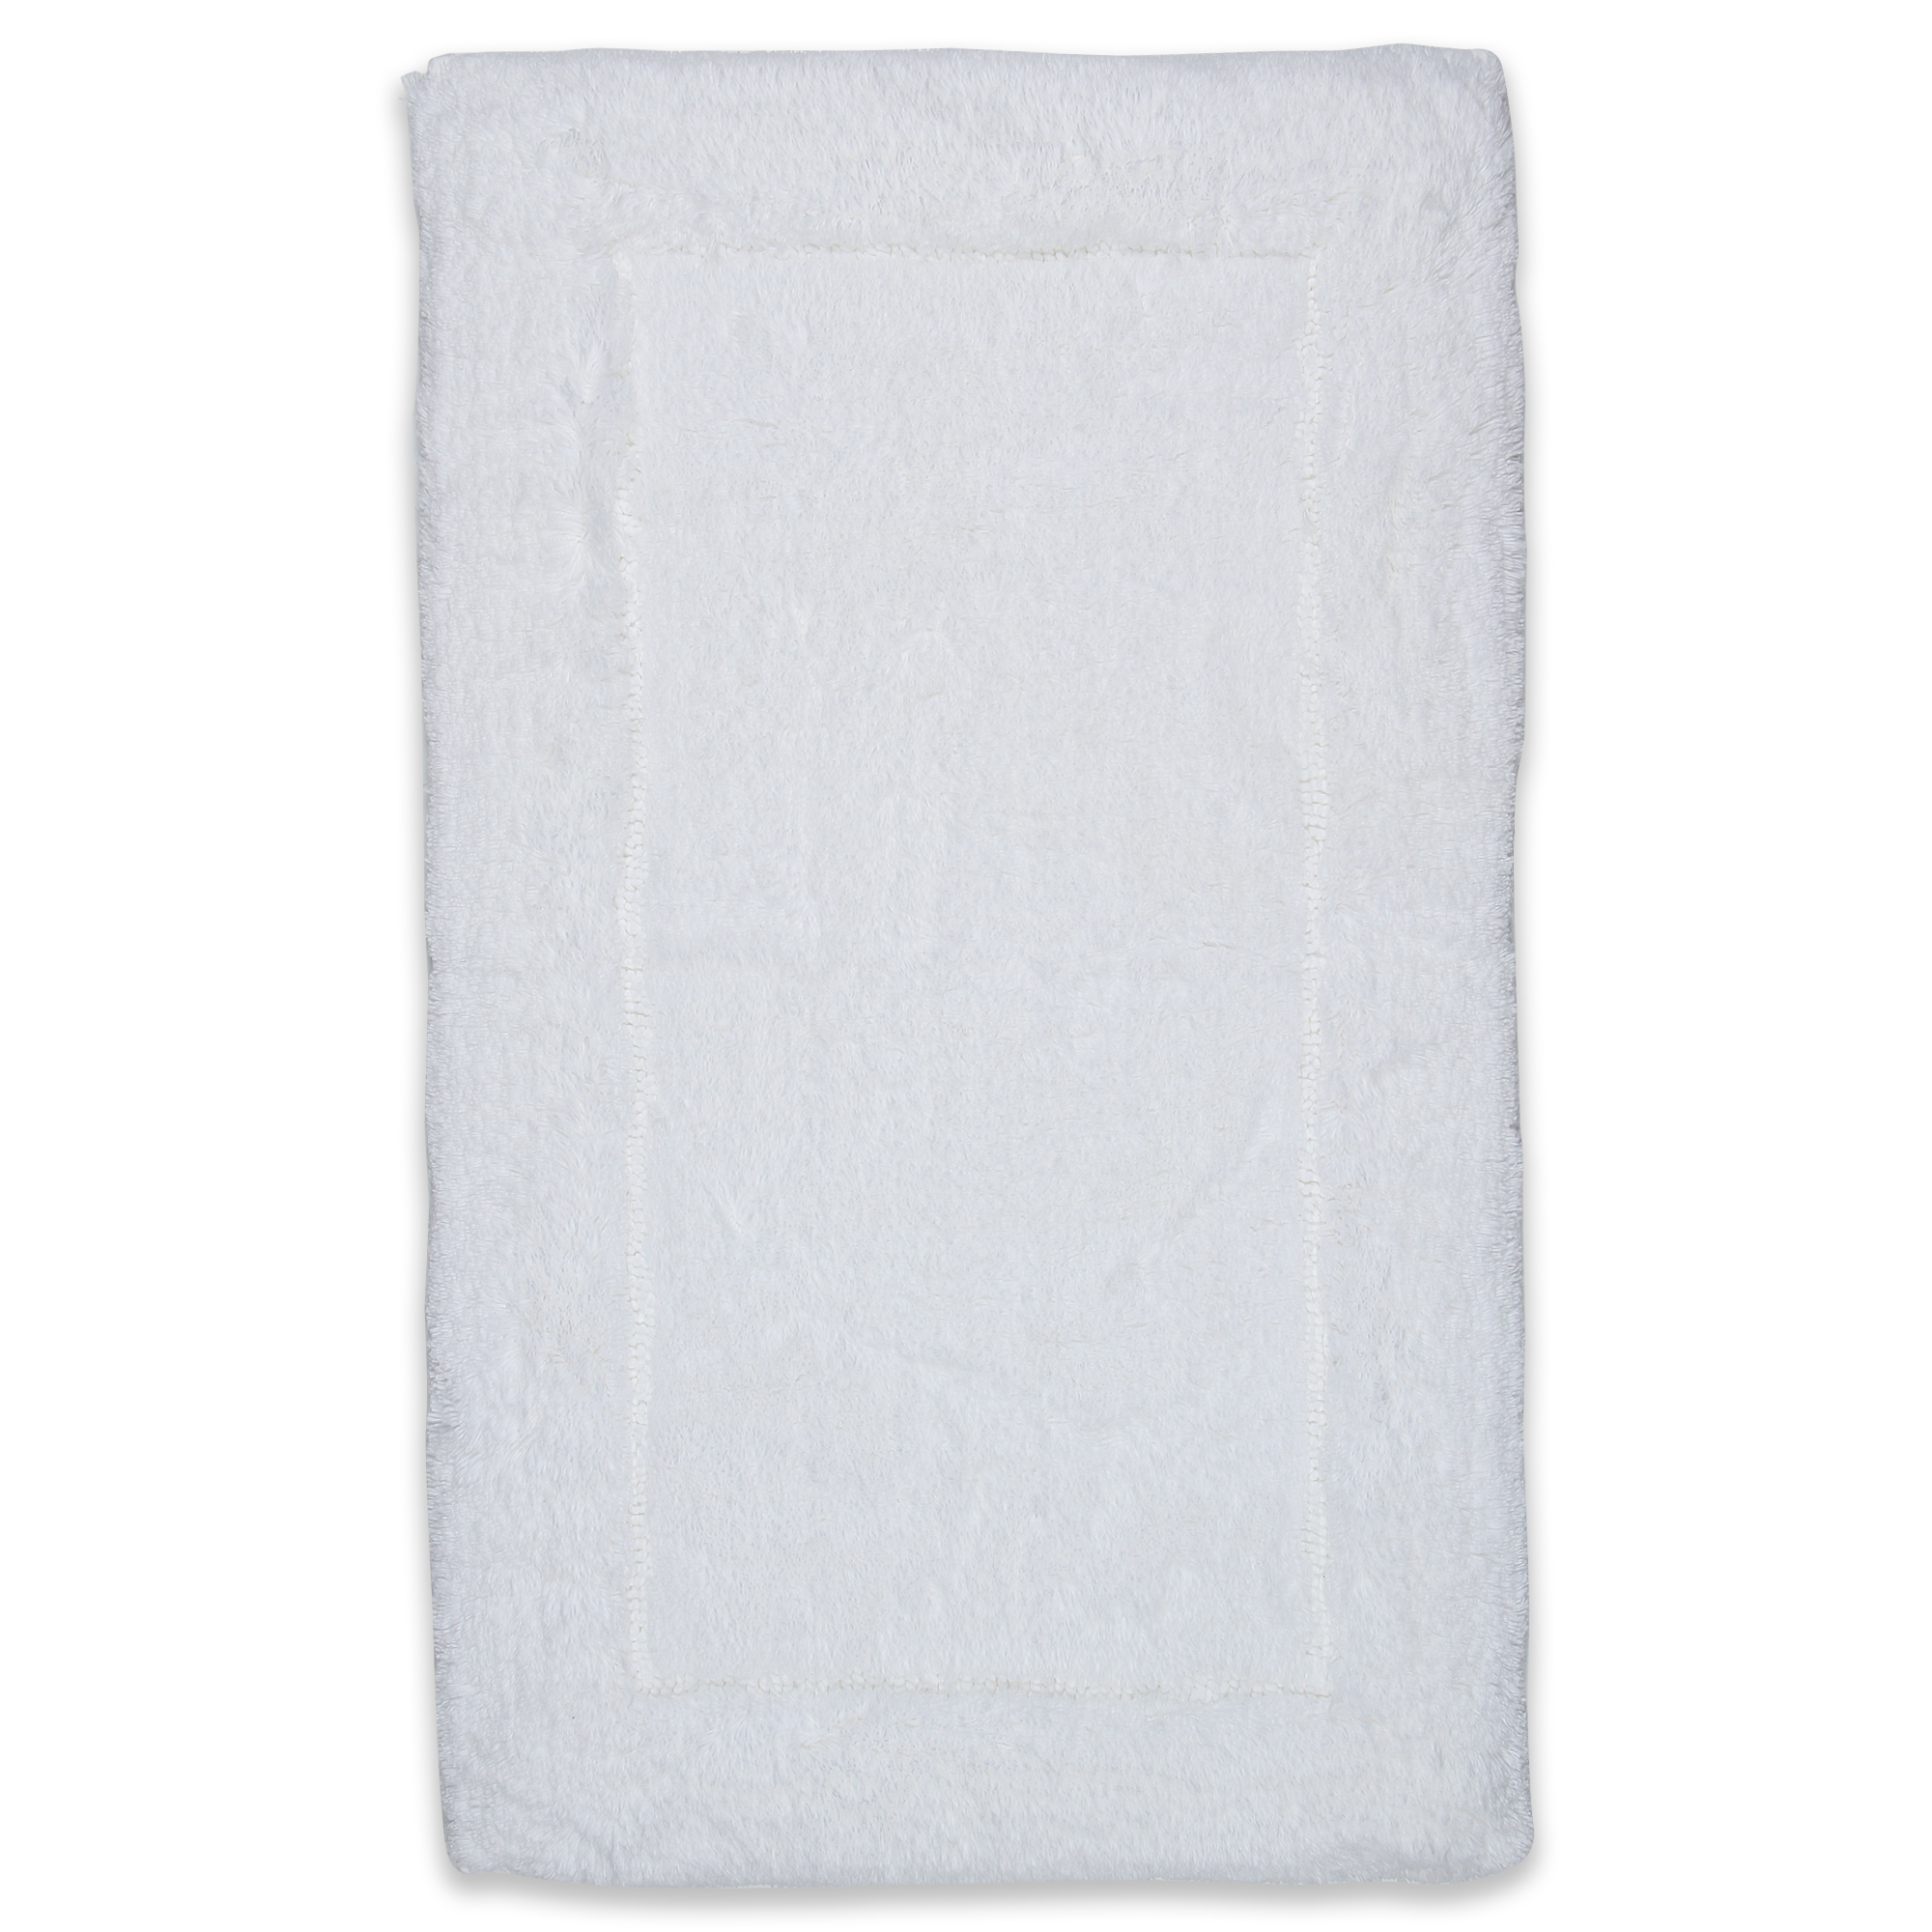 Spaces Hygro White Cotton Mat Small Cotton Bath Mats in White Colour by Spaces